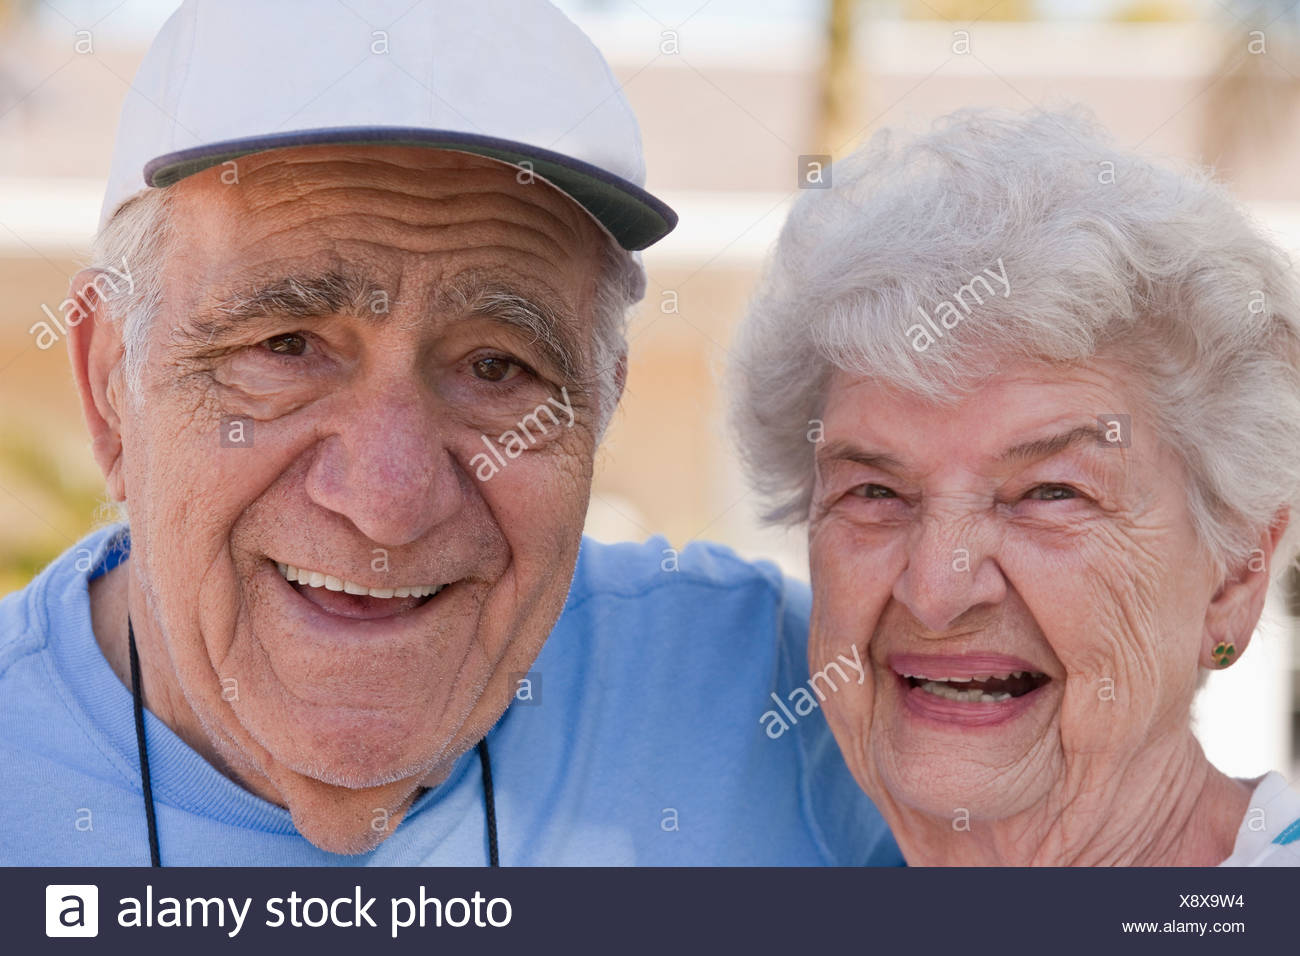 Close-up of a couple smiling - Stock Image